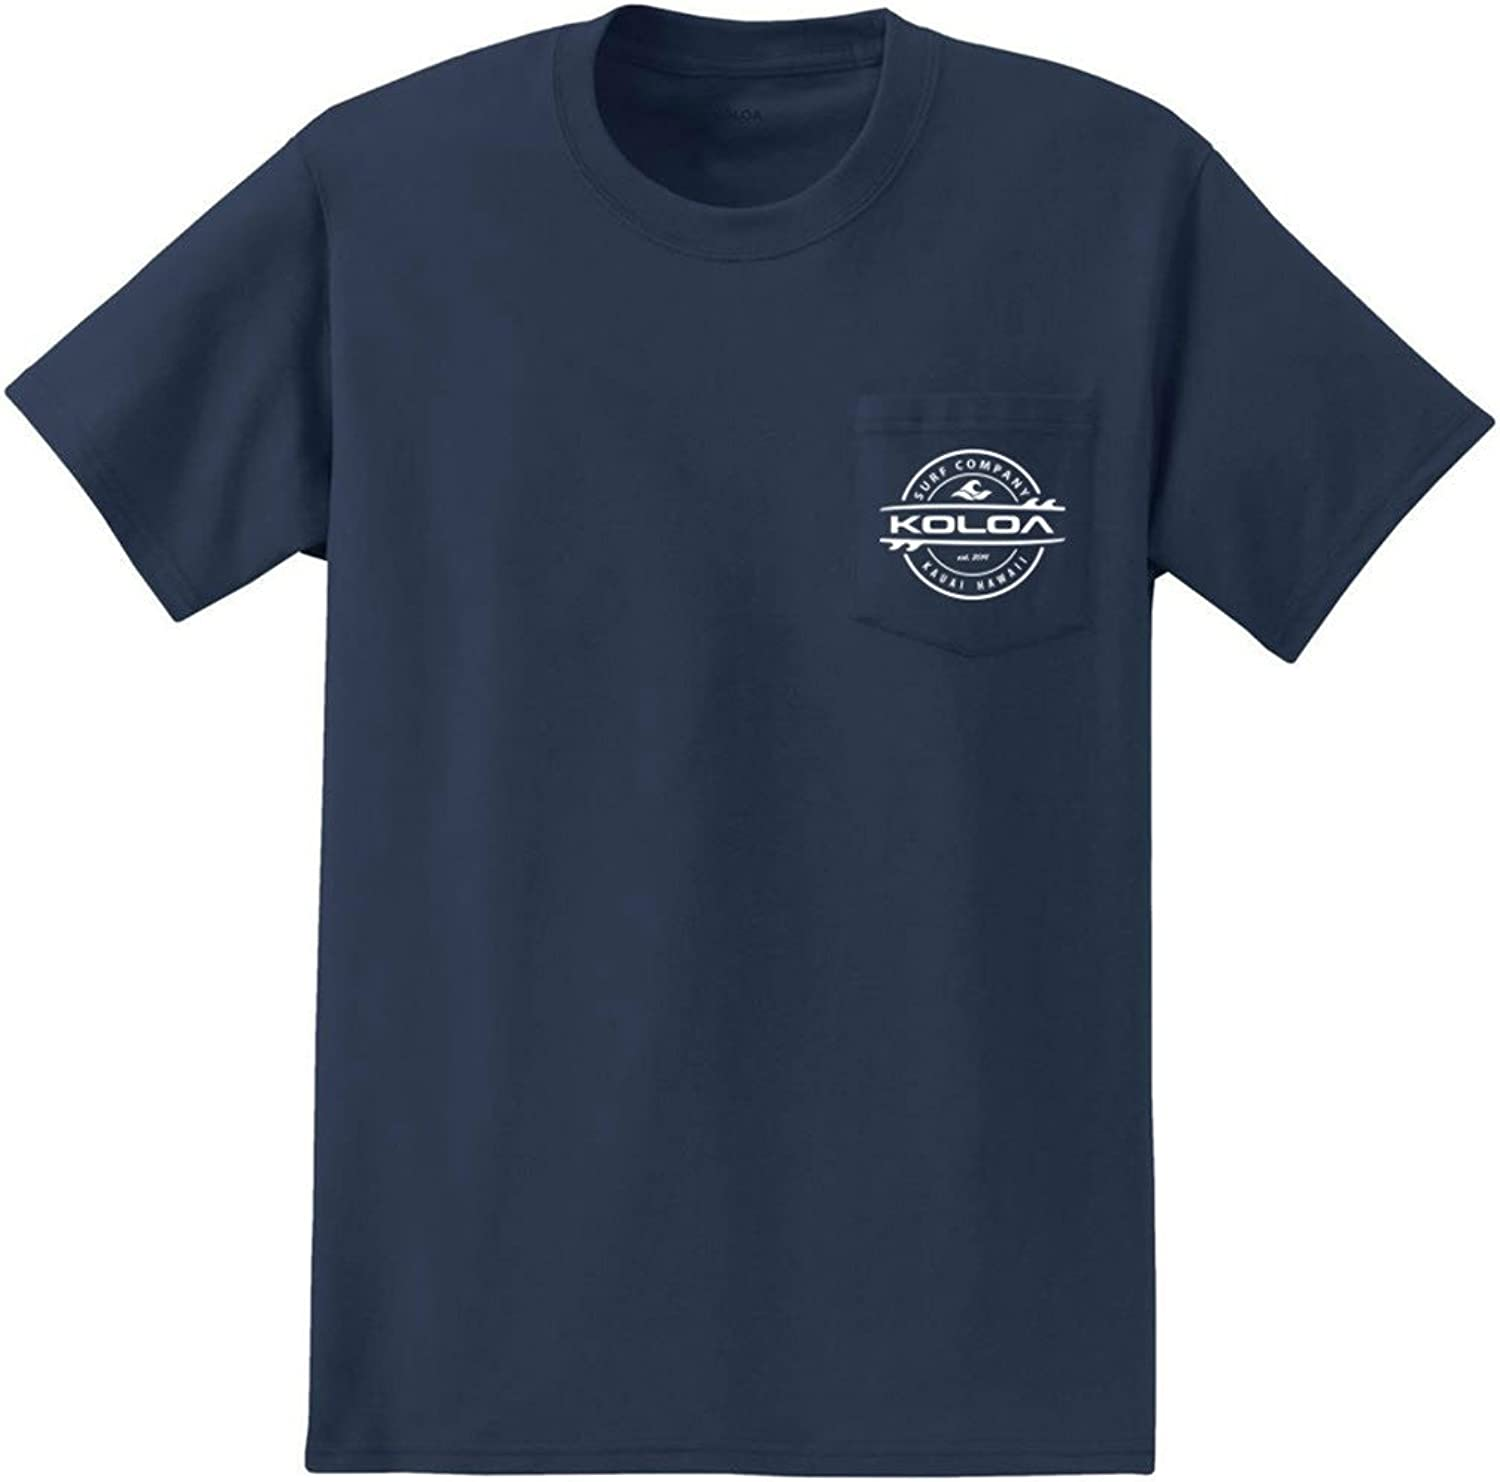 Joe's USA Koloa Thruster Logo Pocket TShirts in Sizes S4XL